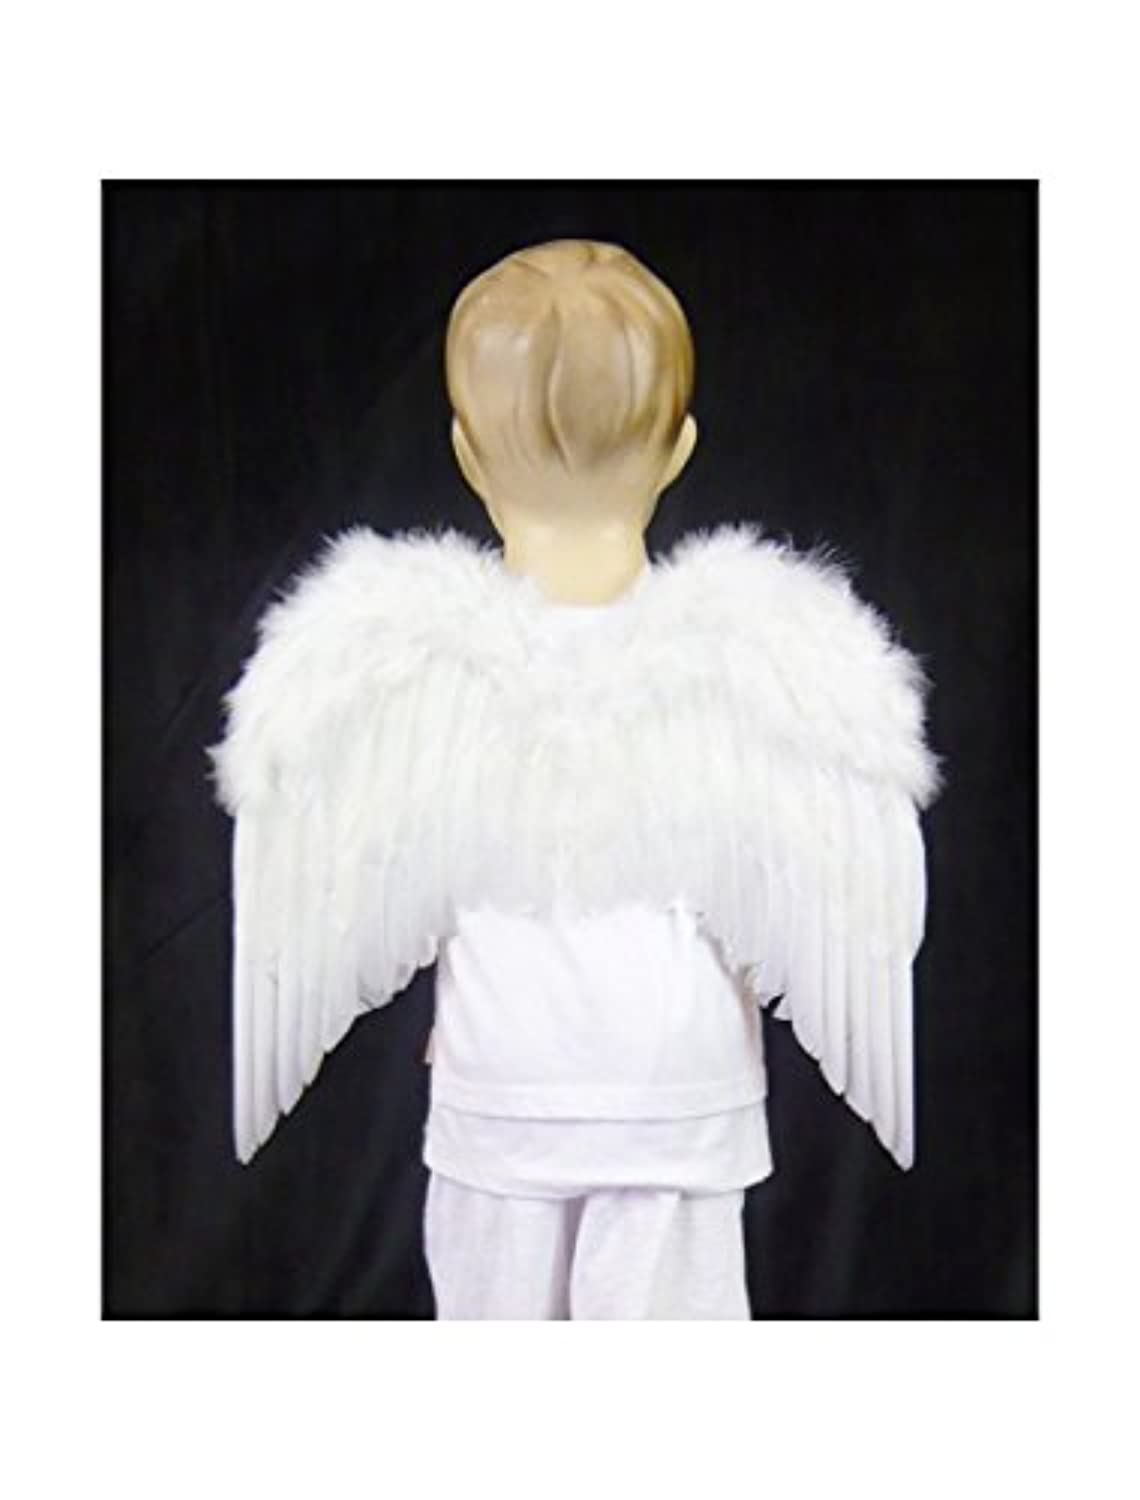 [ファッションウイング]FashionWings Children's Toddler Size White Feather Angel Wings & Headband Halo 101M2W [並行輸入品]